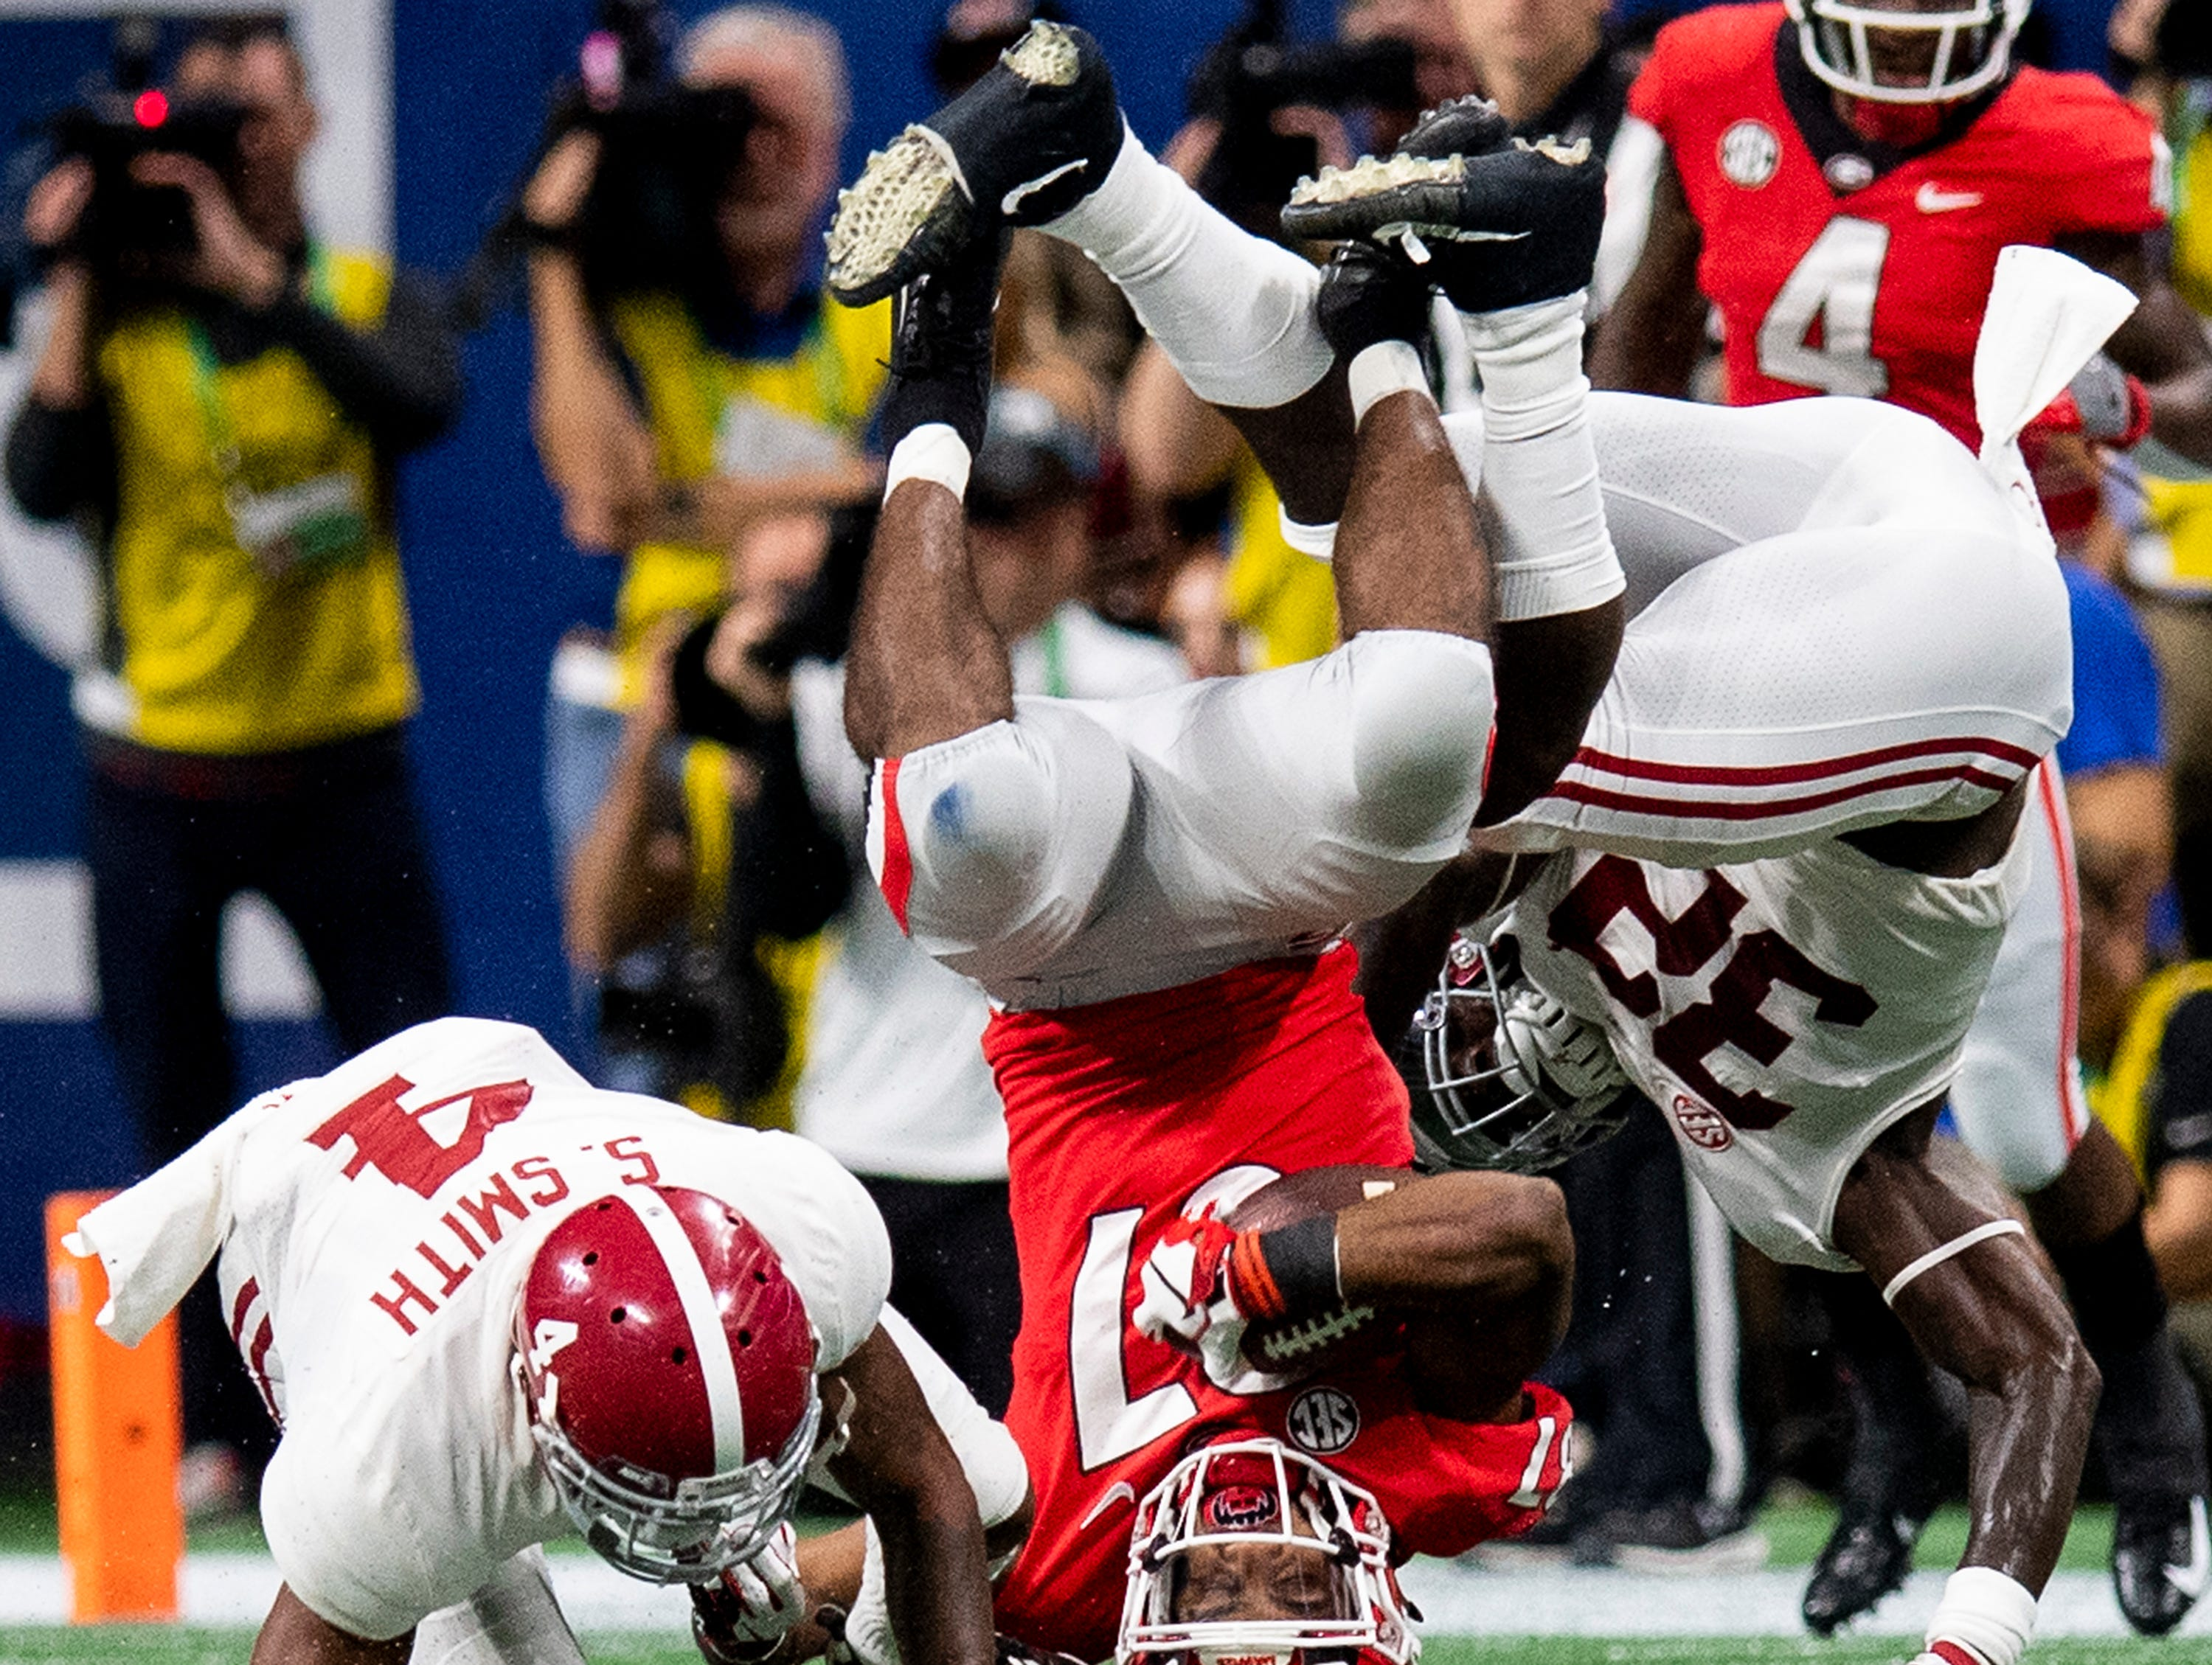 Alabama defensive back Saivion Smith (4) and linebacker Dylan Moses (32) upend Georgia wide receiver Tyler Simmons (87) during first half action of the SEC Championship Game at Mercedes Benz Stadium in Atlanta, Ga., on Saturday December 1, 2018.